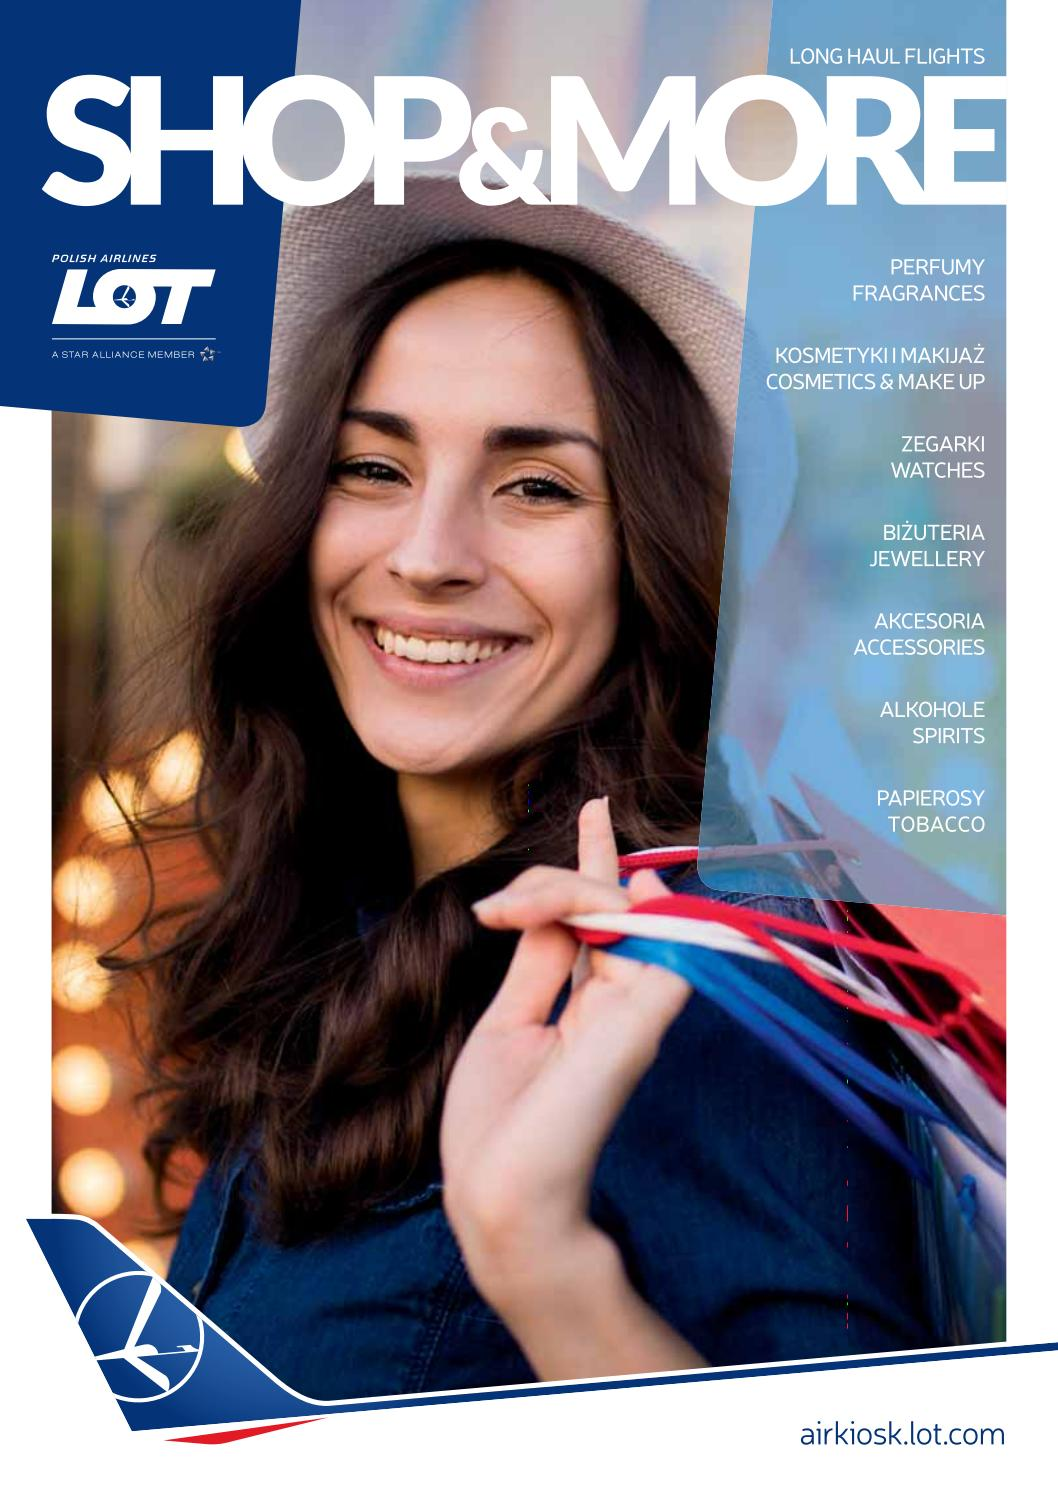 1485e6e2c5c22 Shop   More LH by LOT Polish Airlines - issuu